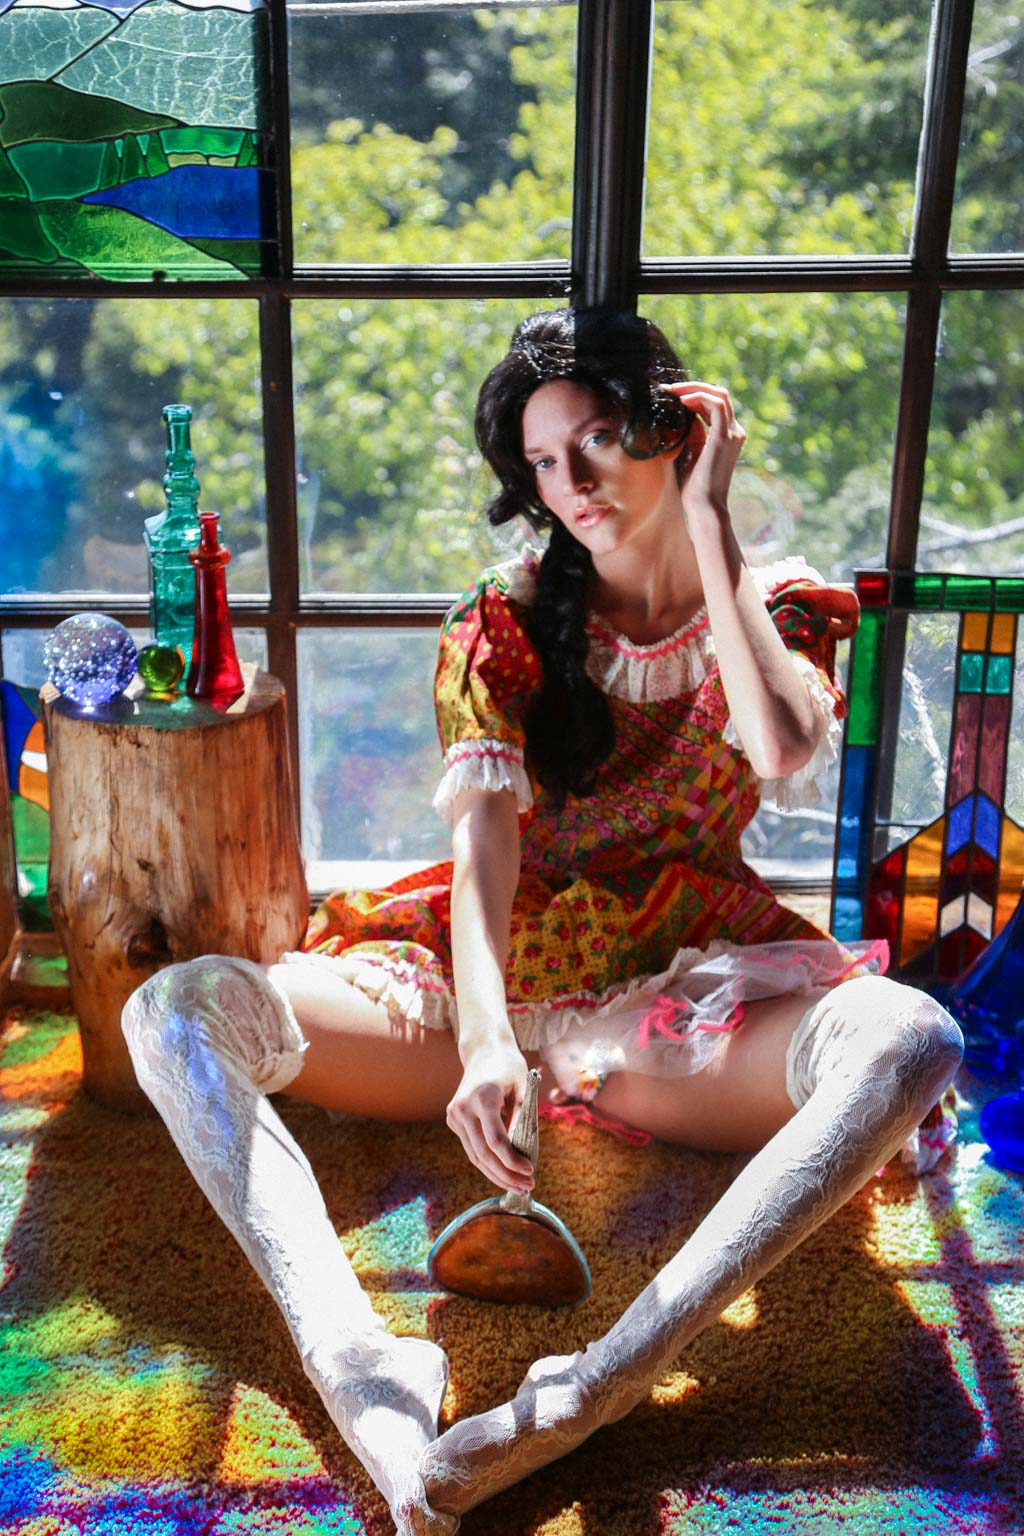 fashion editorial in bohemian rustic cabin shot by fashion photographer los angeles heather van gaale. the girl is surrounded by reflections of colorful light and stained glass while she looks at herself in the mirror.